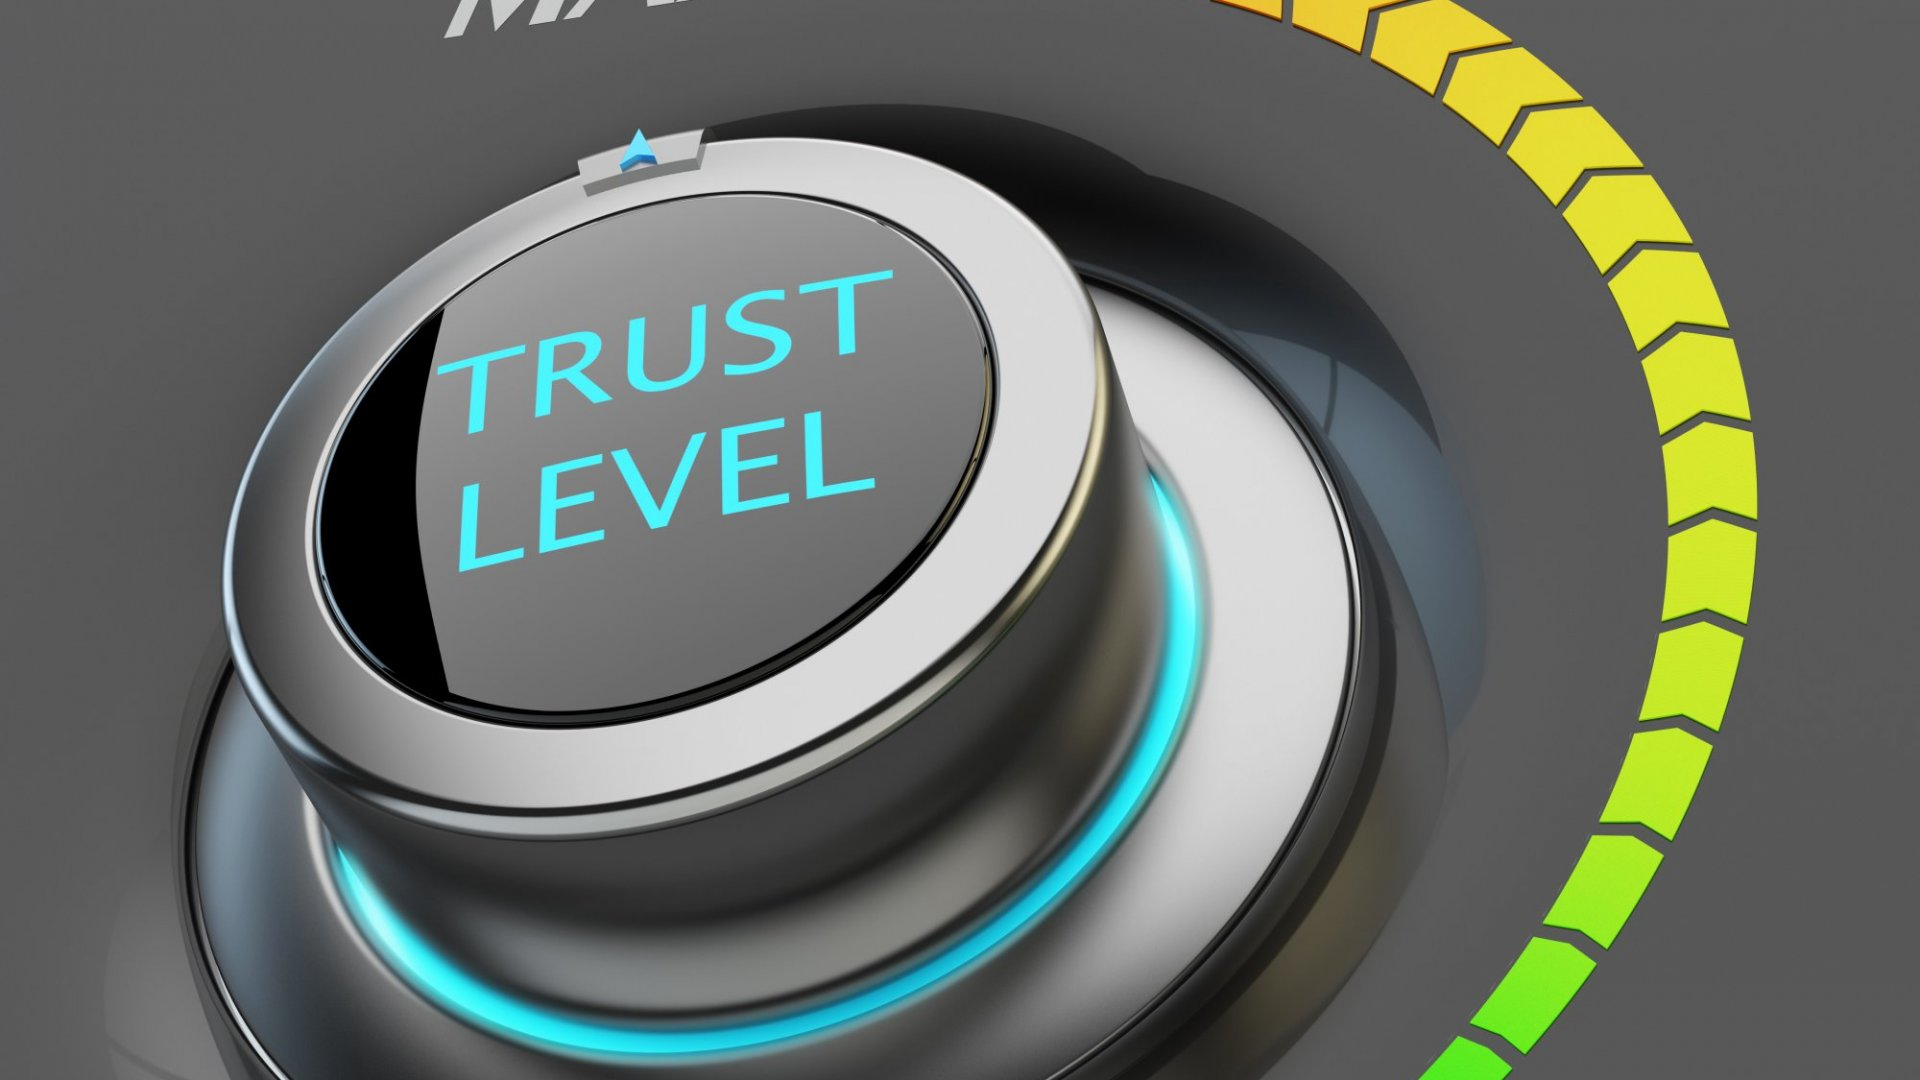 3 Methods to Fast-Track Trust Within Your Team